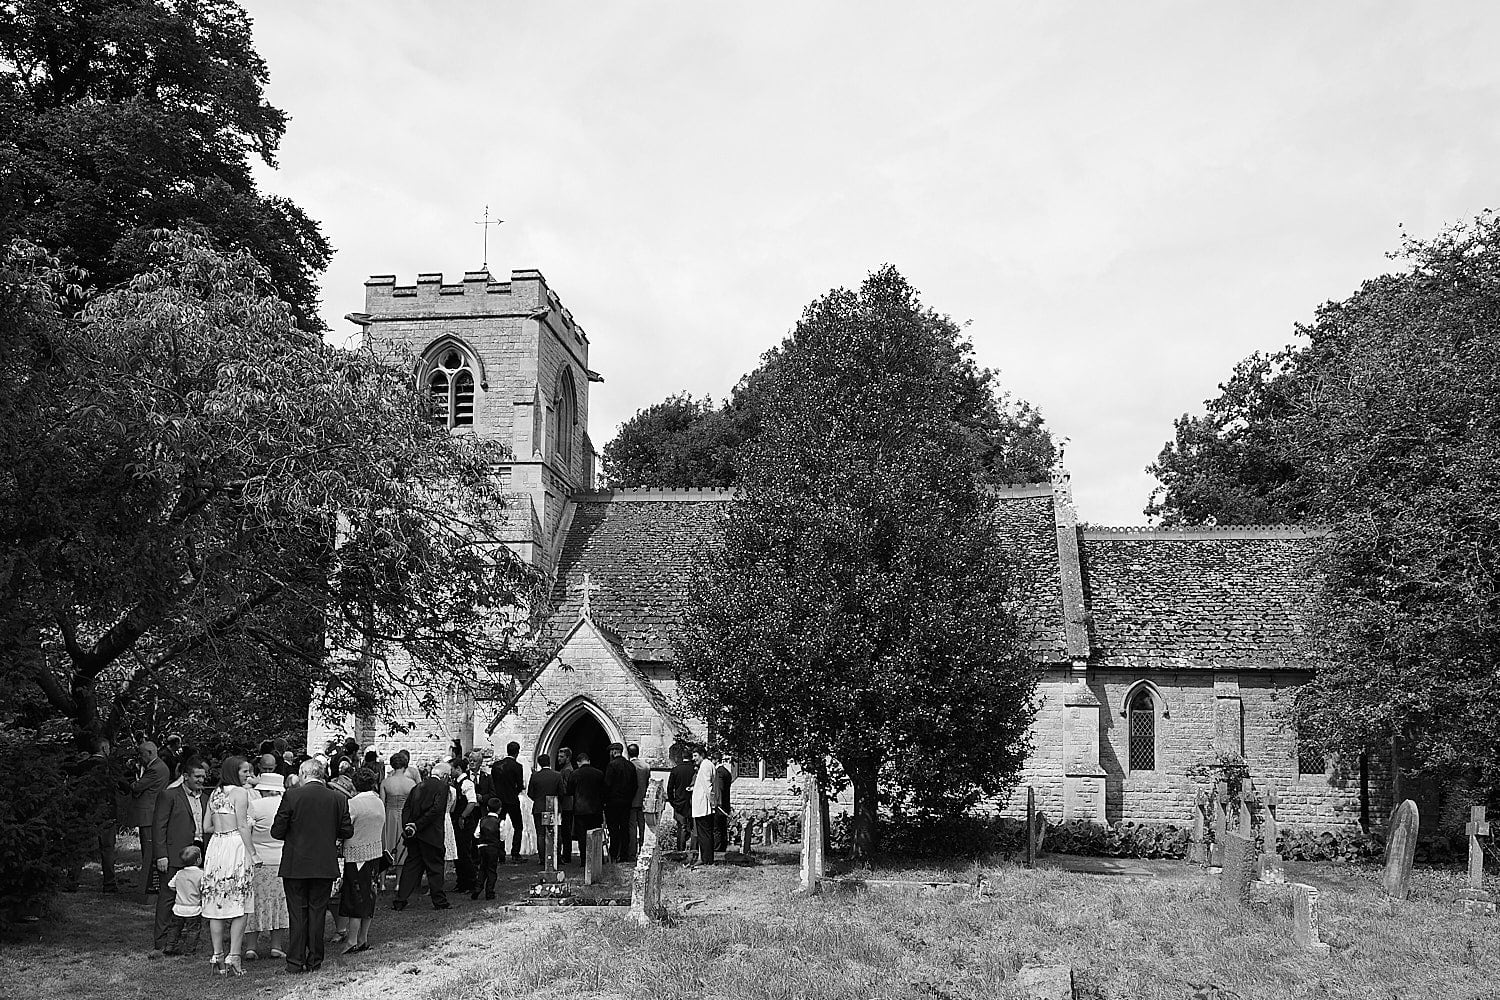 Overview of St Peters Church on the grounds of National Trust Wedding Venue Gunby Hall